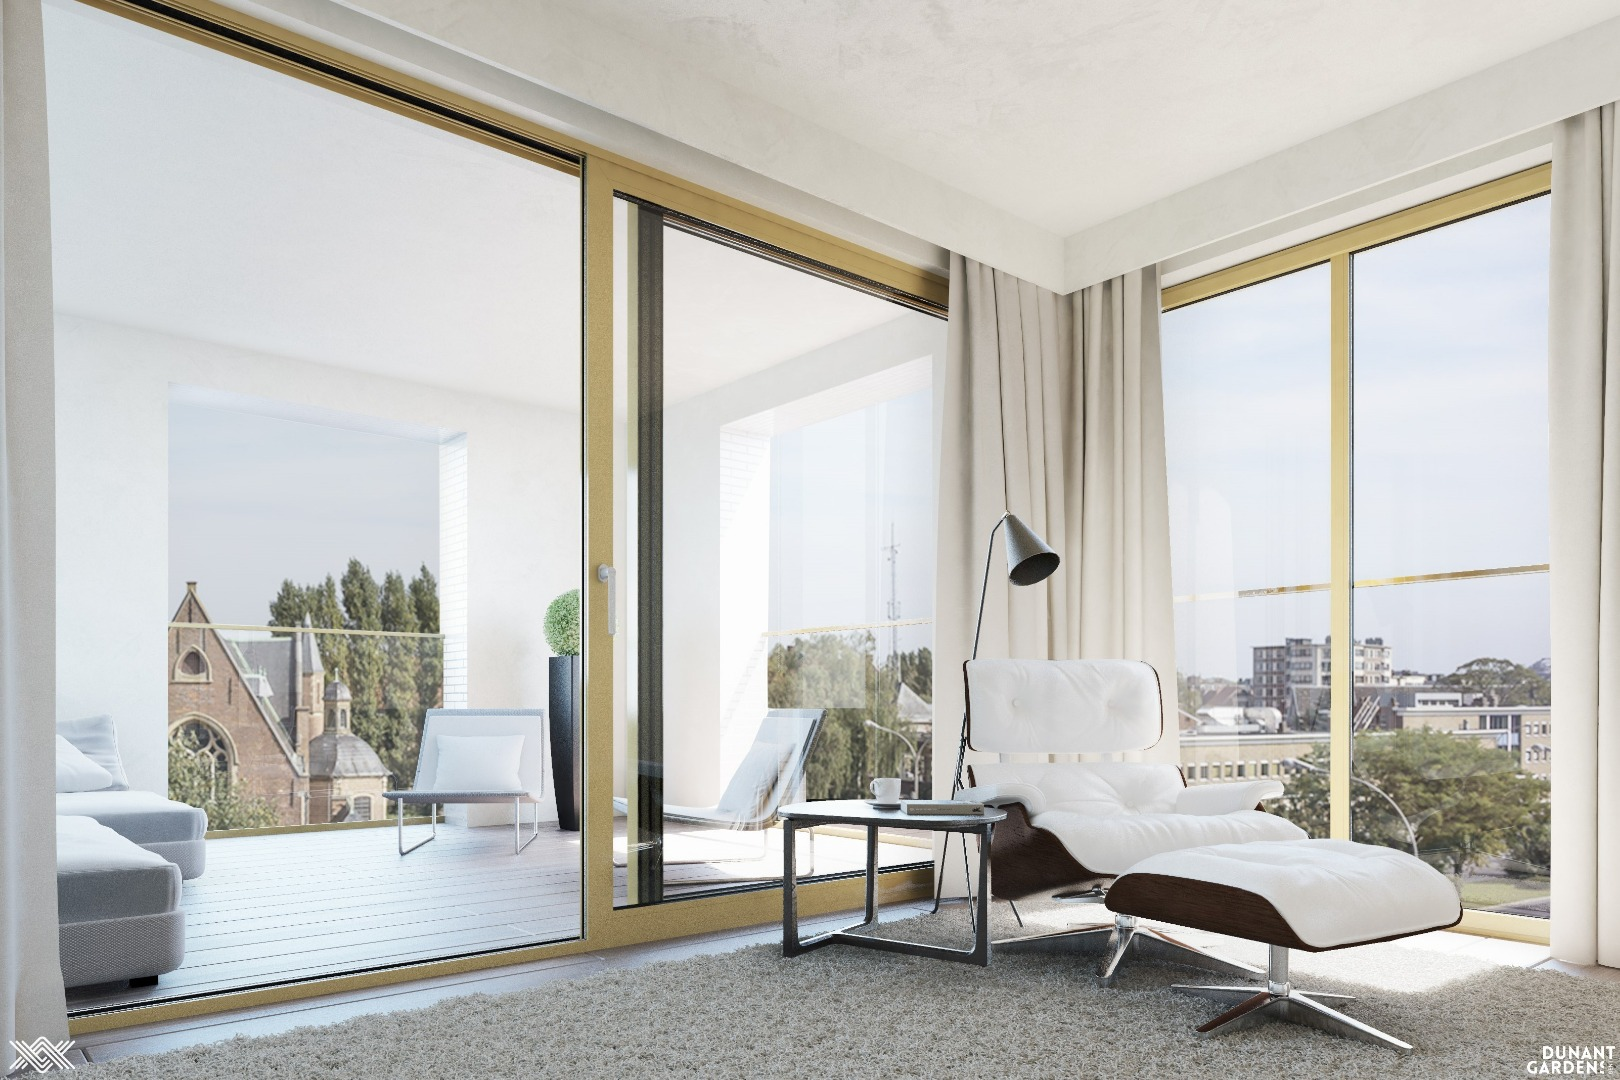 For sale at Landbergh: 3 bedroom penthouse in Ghent